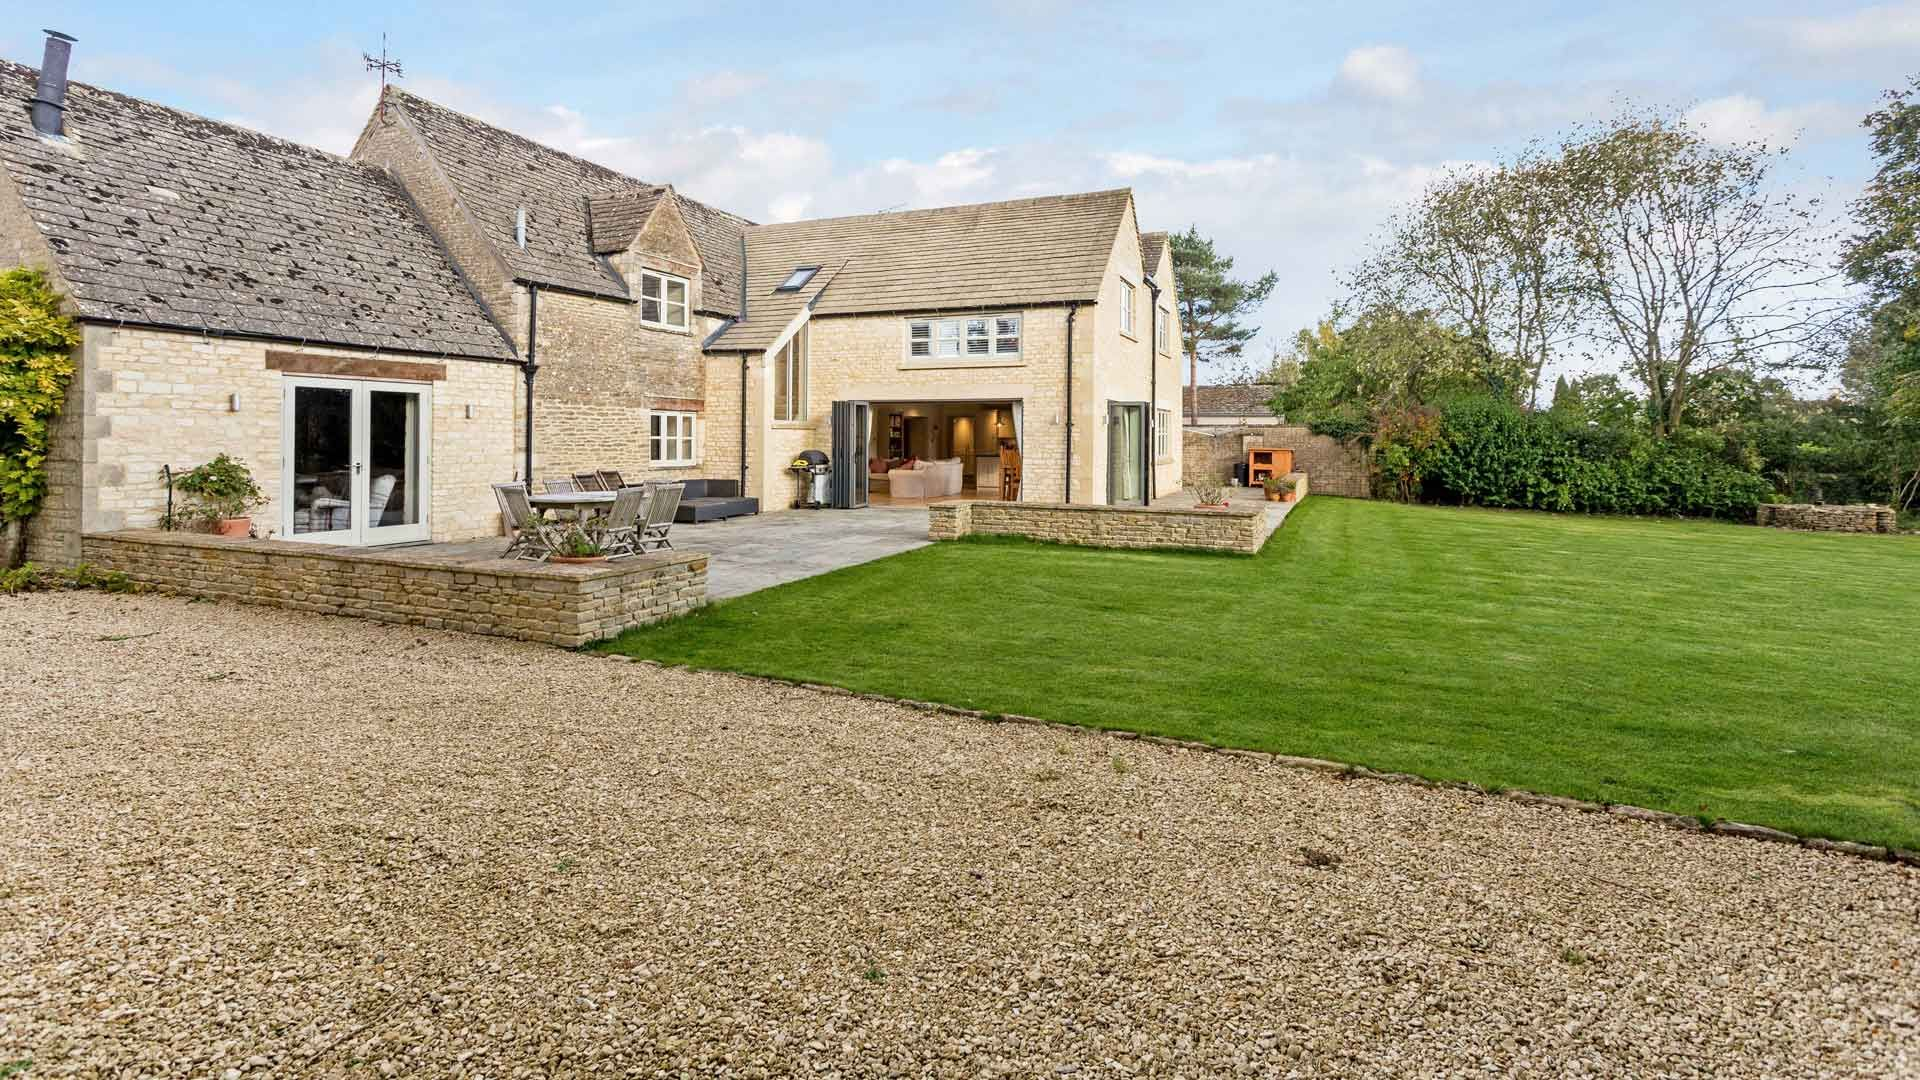 The Old Farm, Ampney Crucis, Near Cirencester - StayCotswold